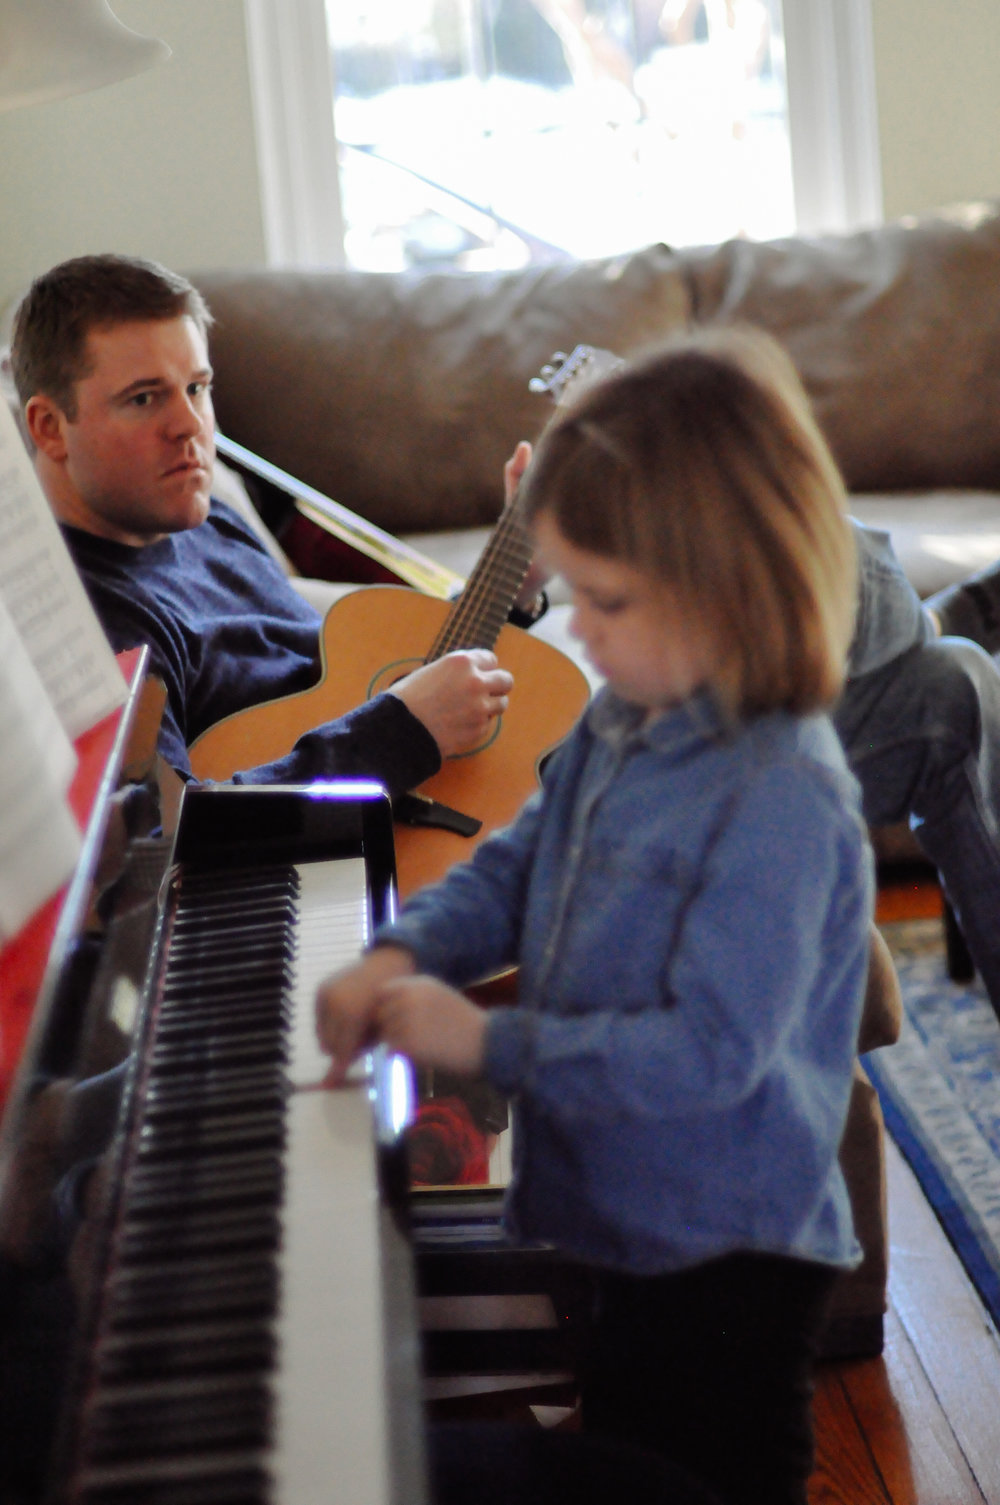 playing music with her dad